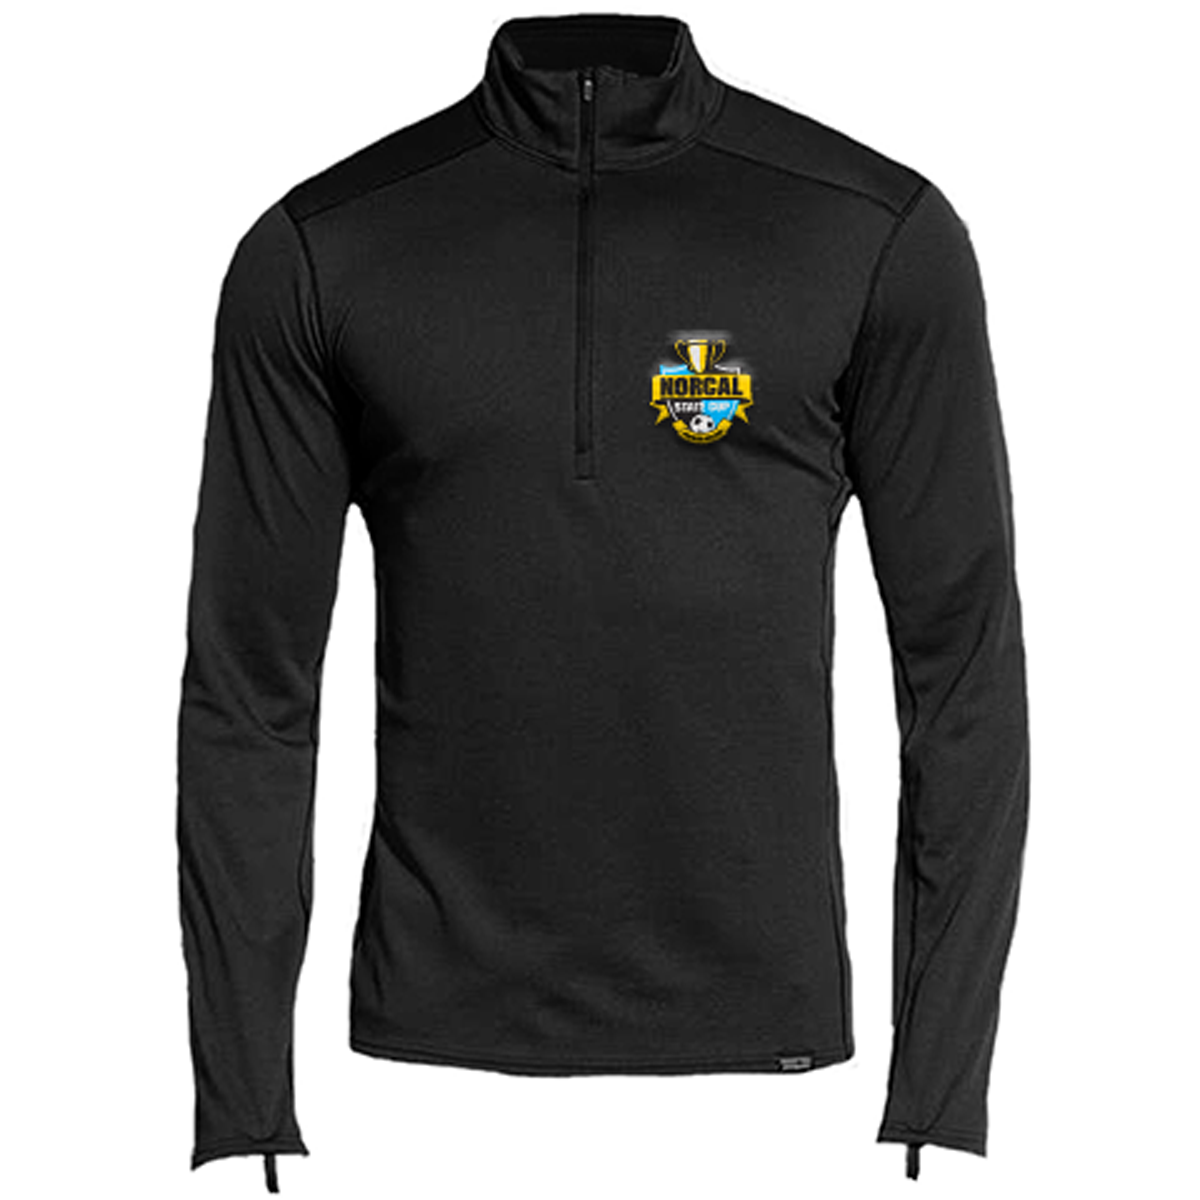 Embroidered Admiral Pro Stretch 1/4 Zip Pullover-3XL